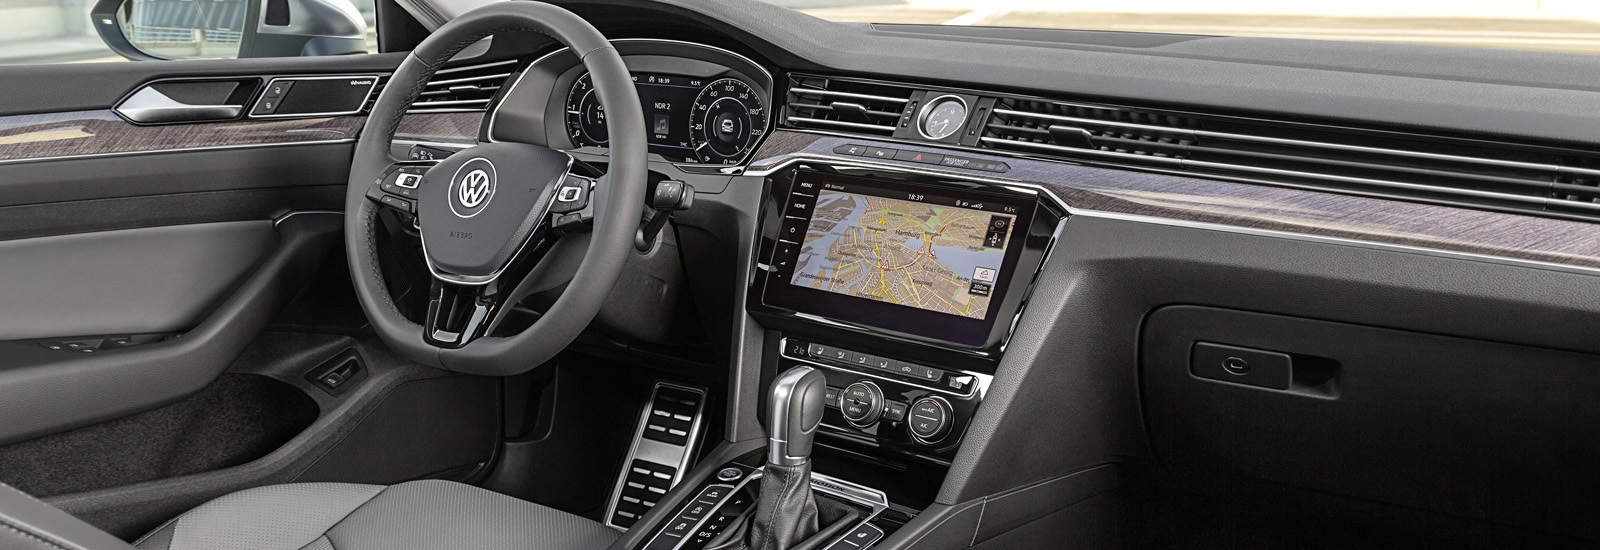 2018 volkswagen touareg interior. exellent interior the vw touaregu0027s interior could feature a large infotainment system and  display screen behind the steering wheel u2013 similar to arteonu0027s  and 2018 volkswagen touareg n